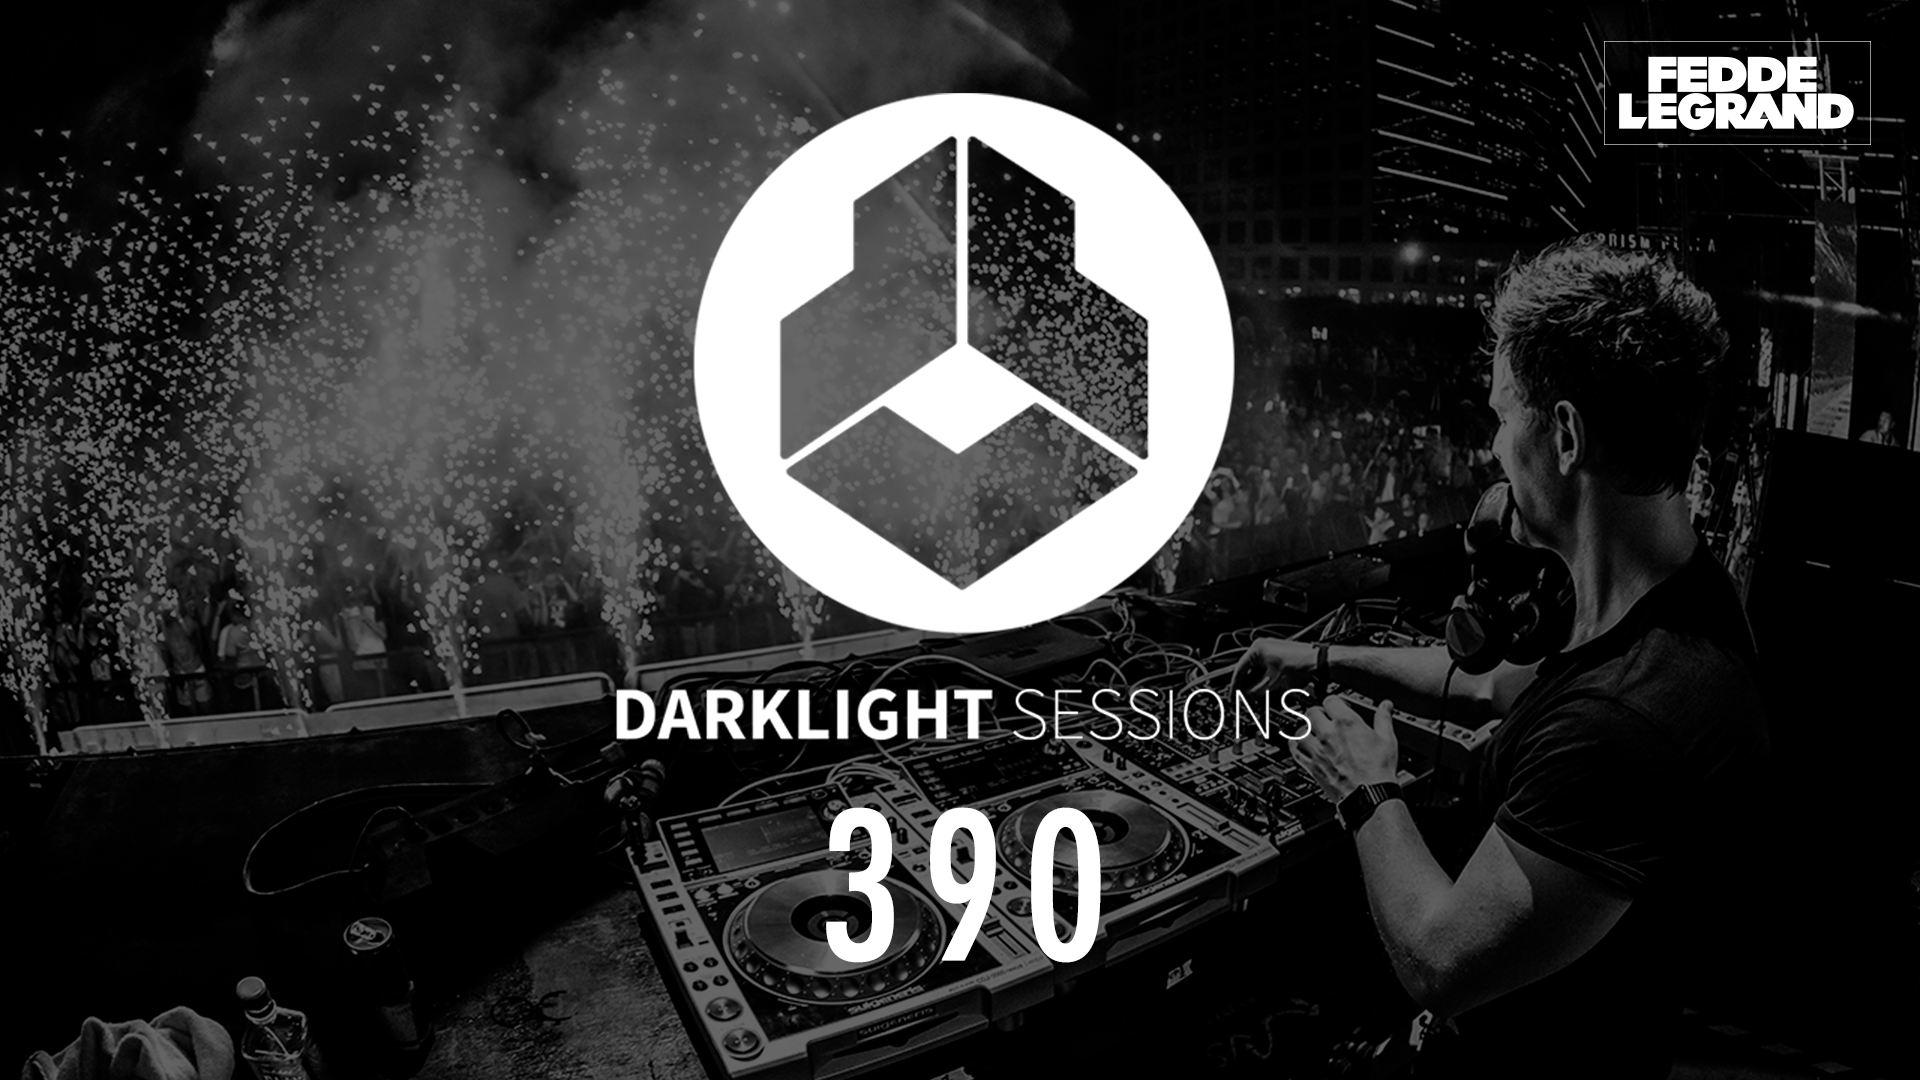 Darklight Sessions 390